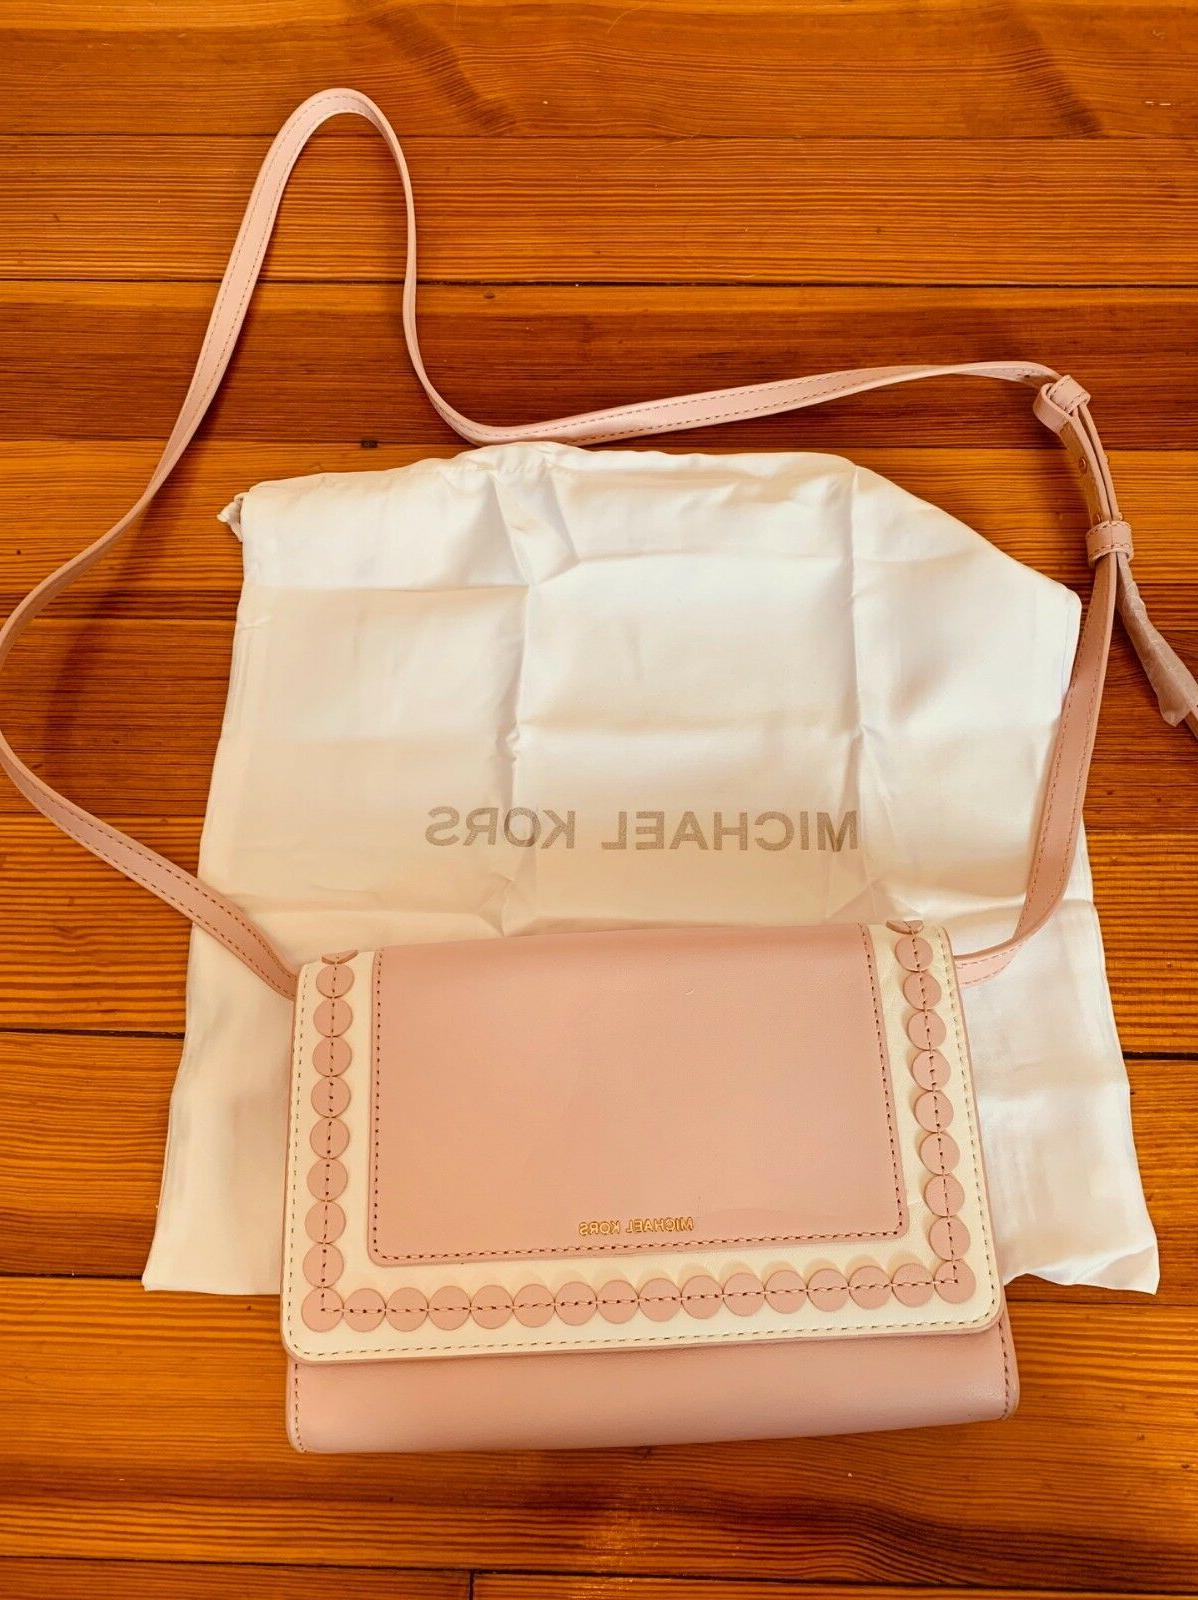 Designer Michael Kors pink white leather crossbody small